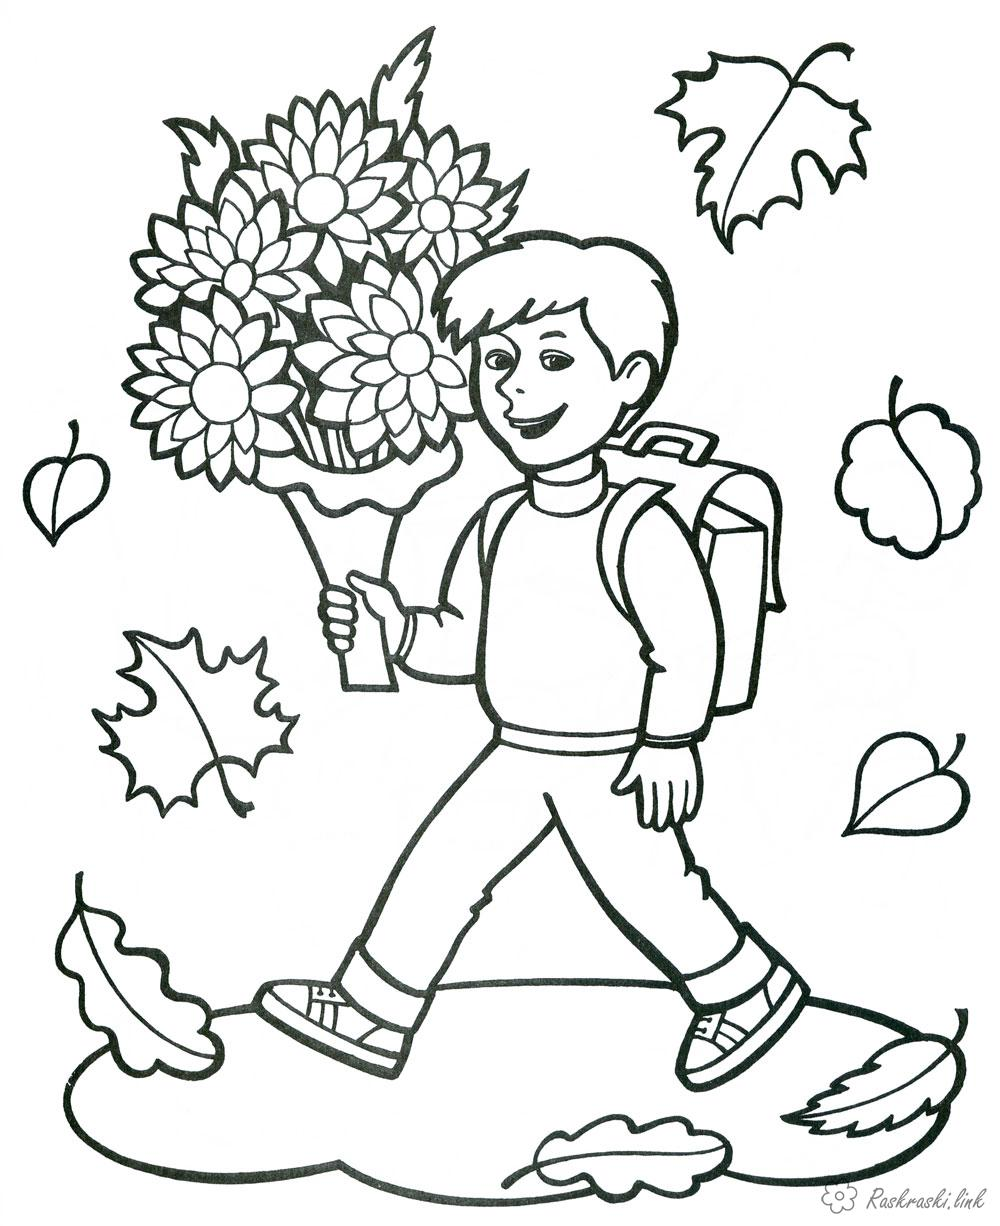 Coloring flowers The boy, backpack, flowers, autumn leaf fall